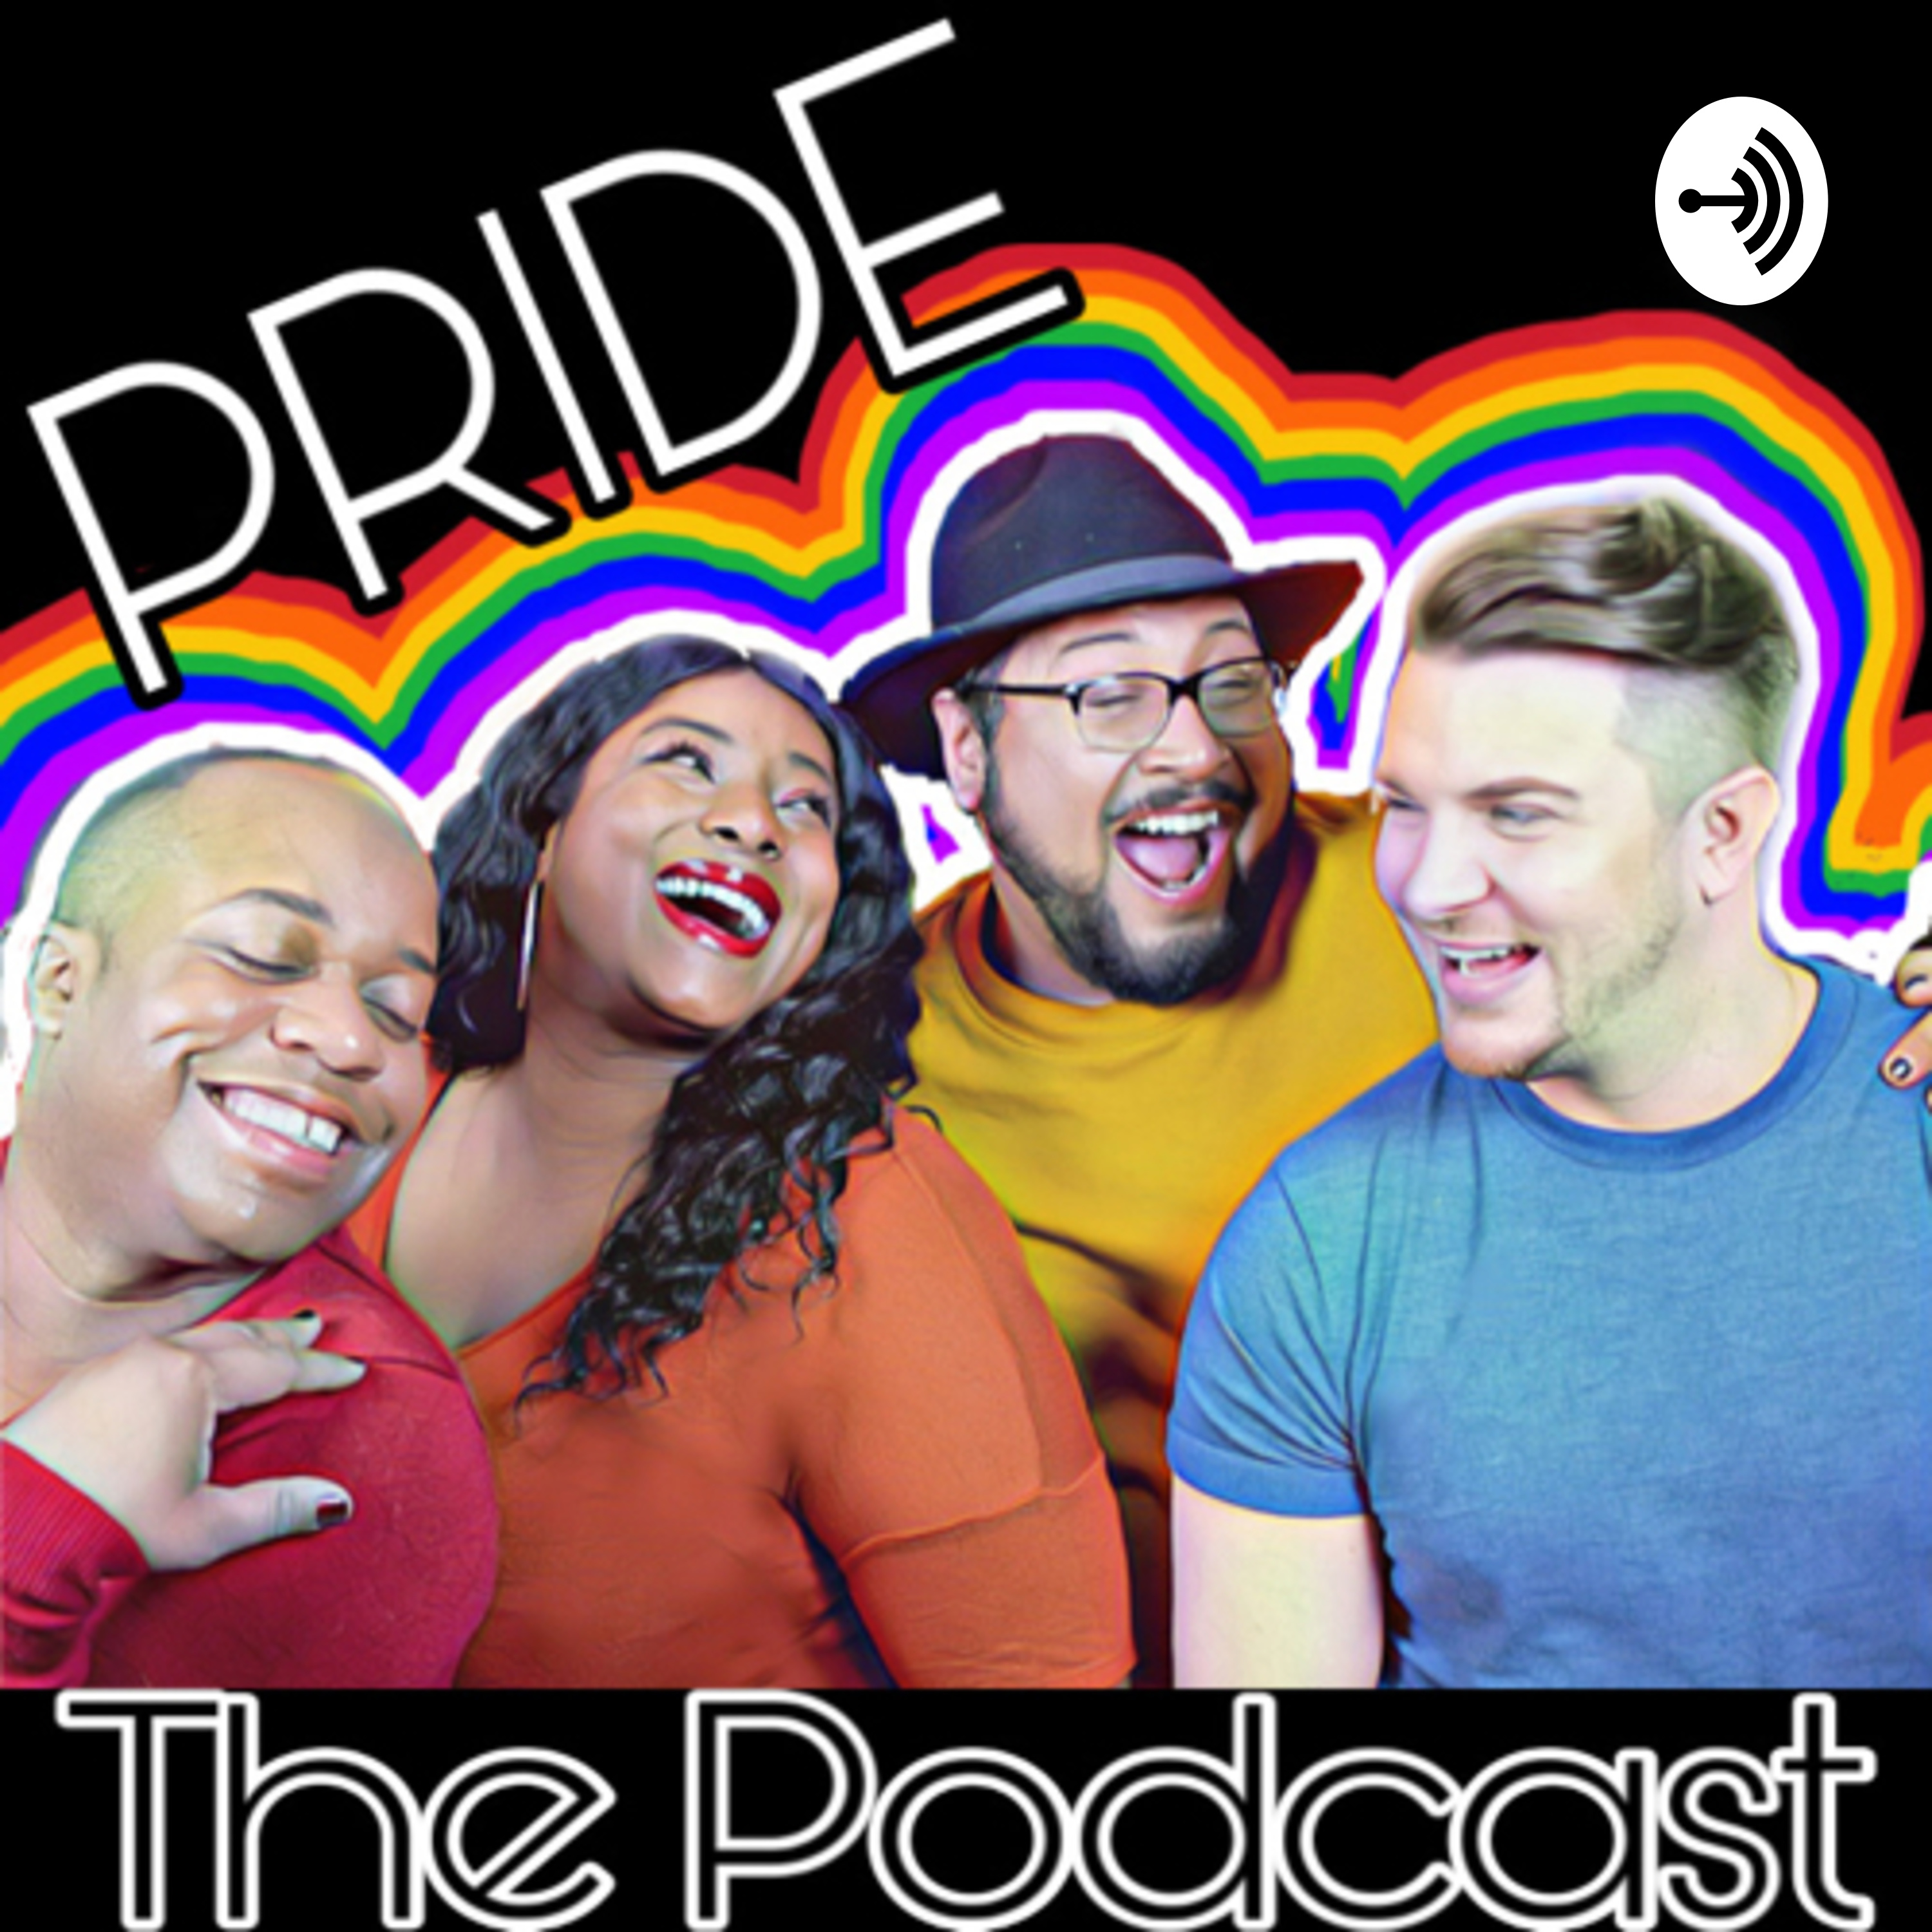 PRIDE: The Podcast